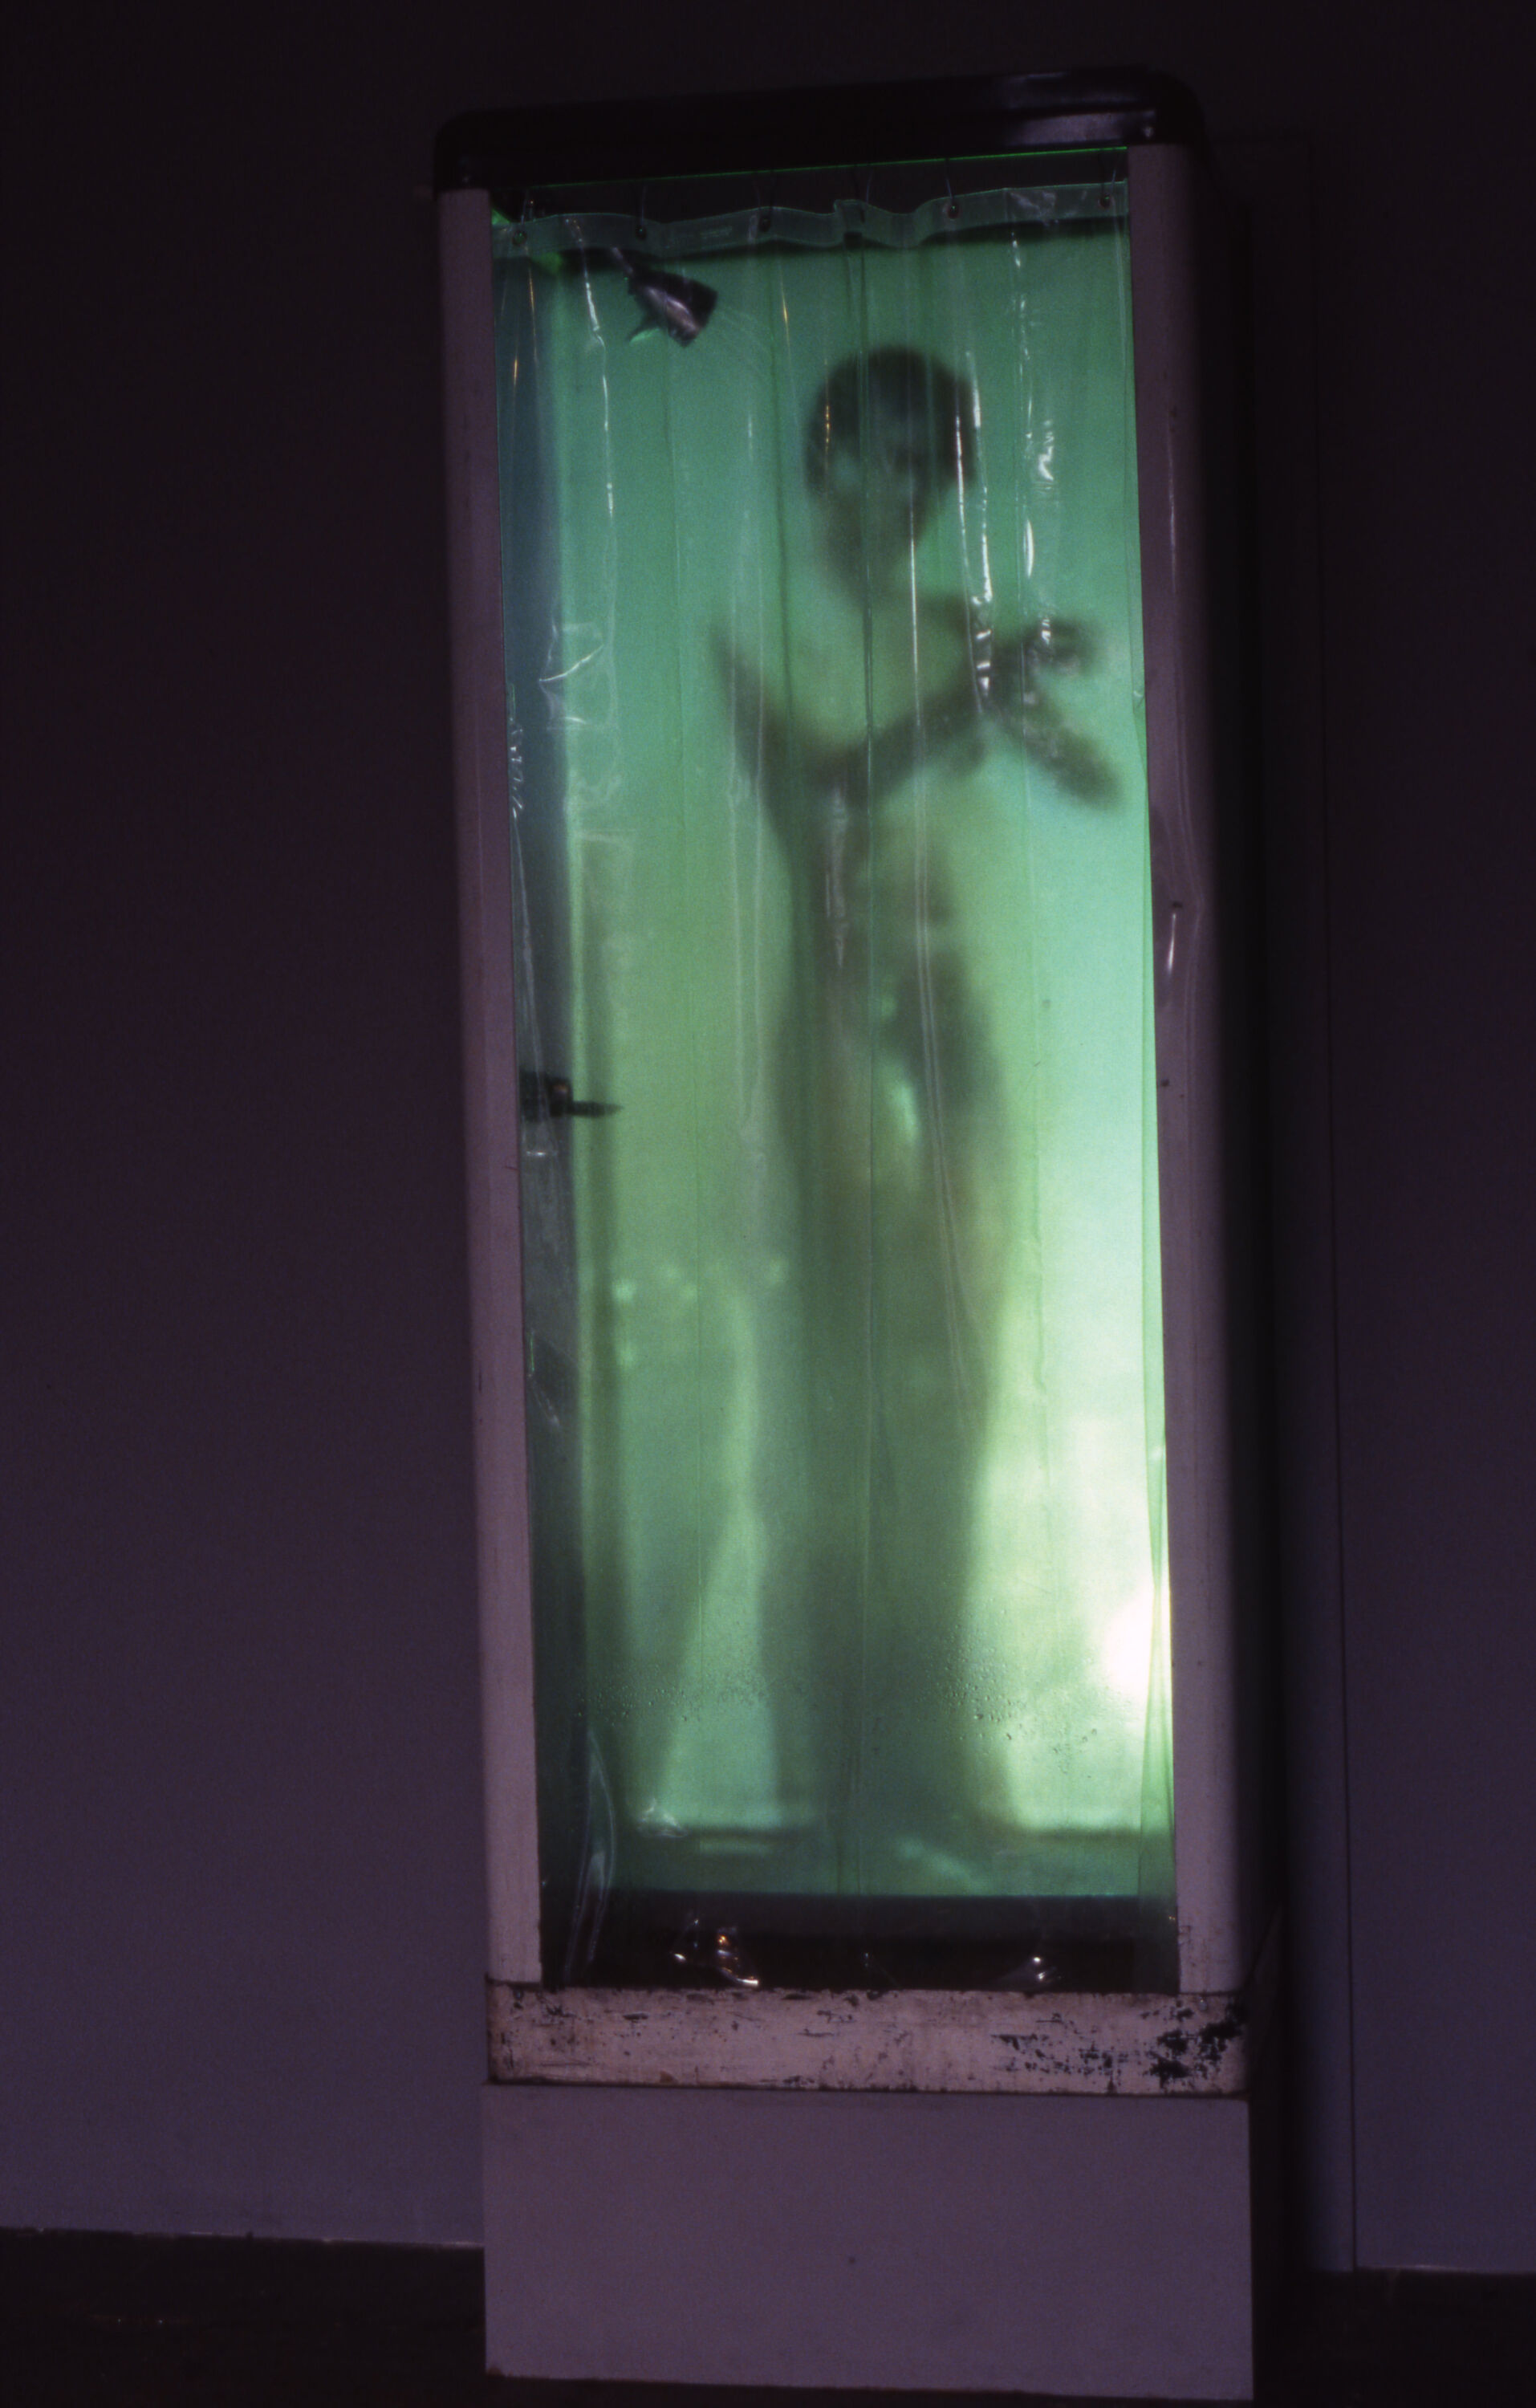 A long white frame with a plastic cover over a green-hued blurred image of a naked figure taking a shower.